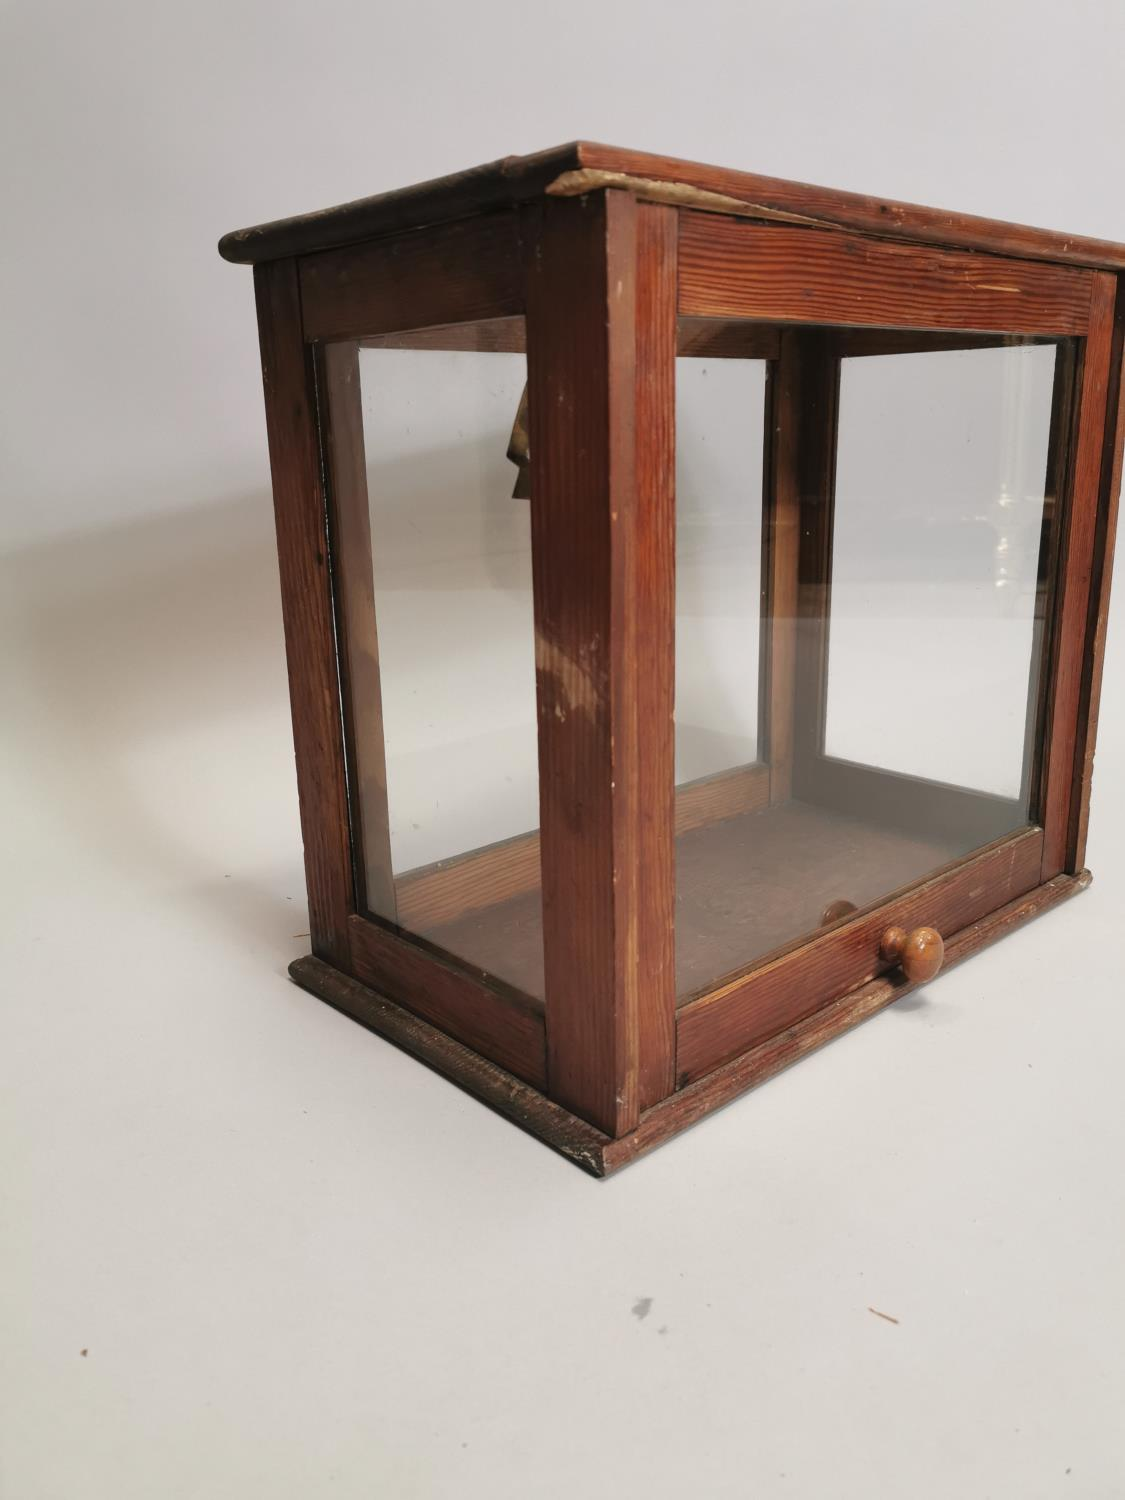 Early 20th. C. glazed pine display cabinet - Image 2 of 7